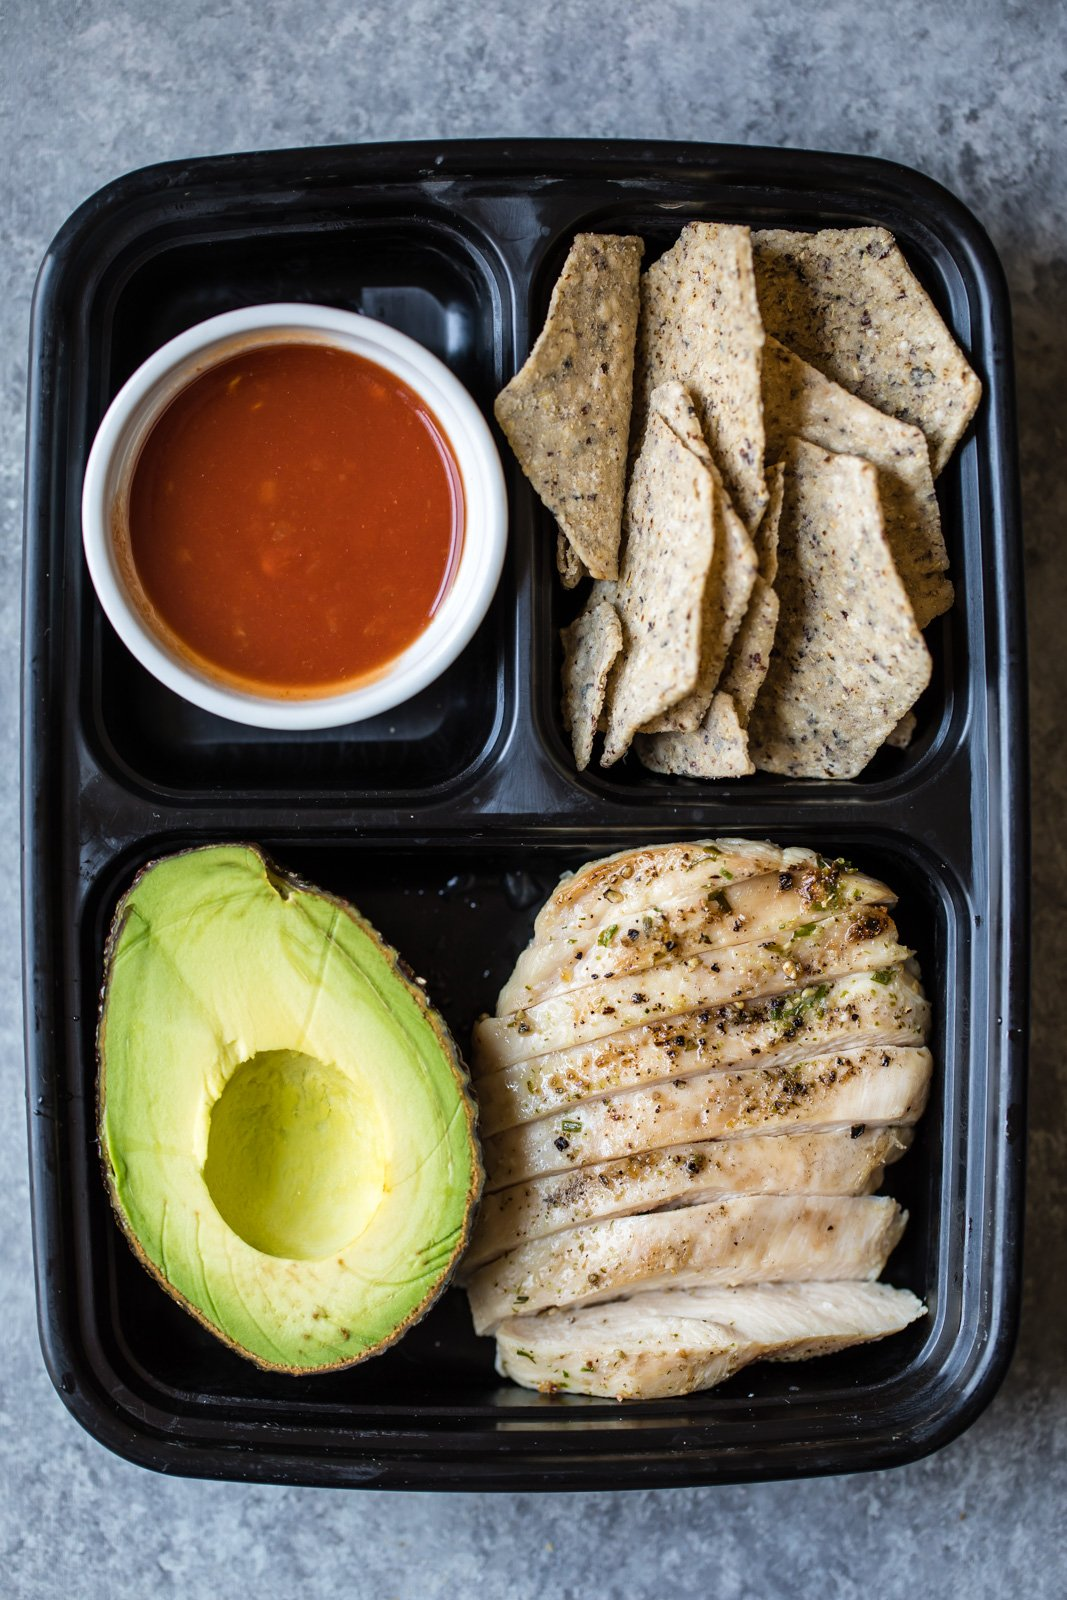 tortilla chips, avocado, chicken, and salsa in a bento box